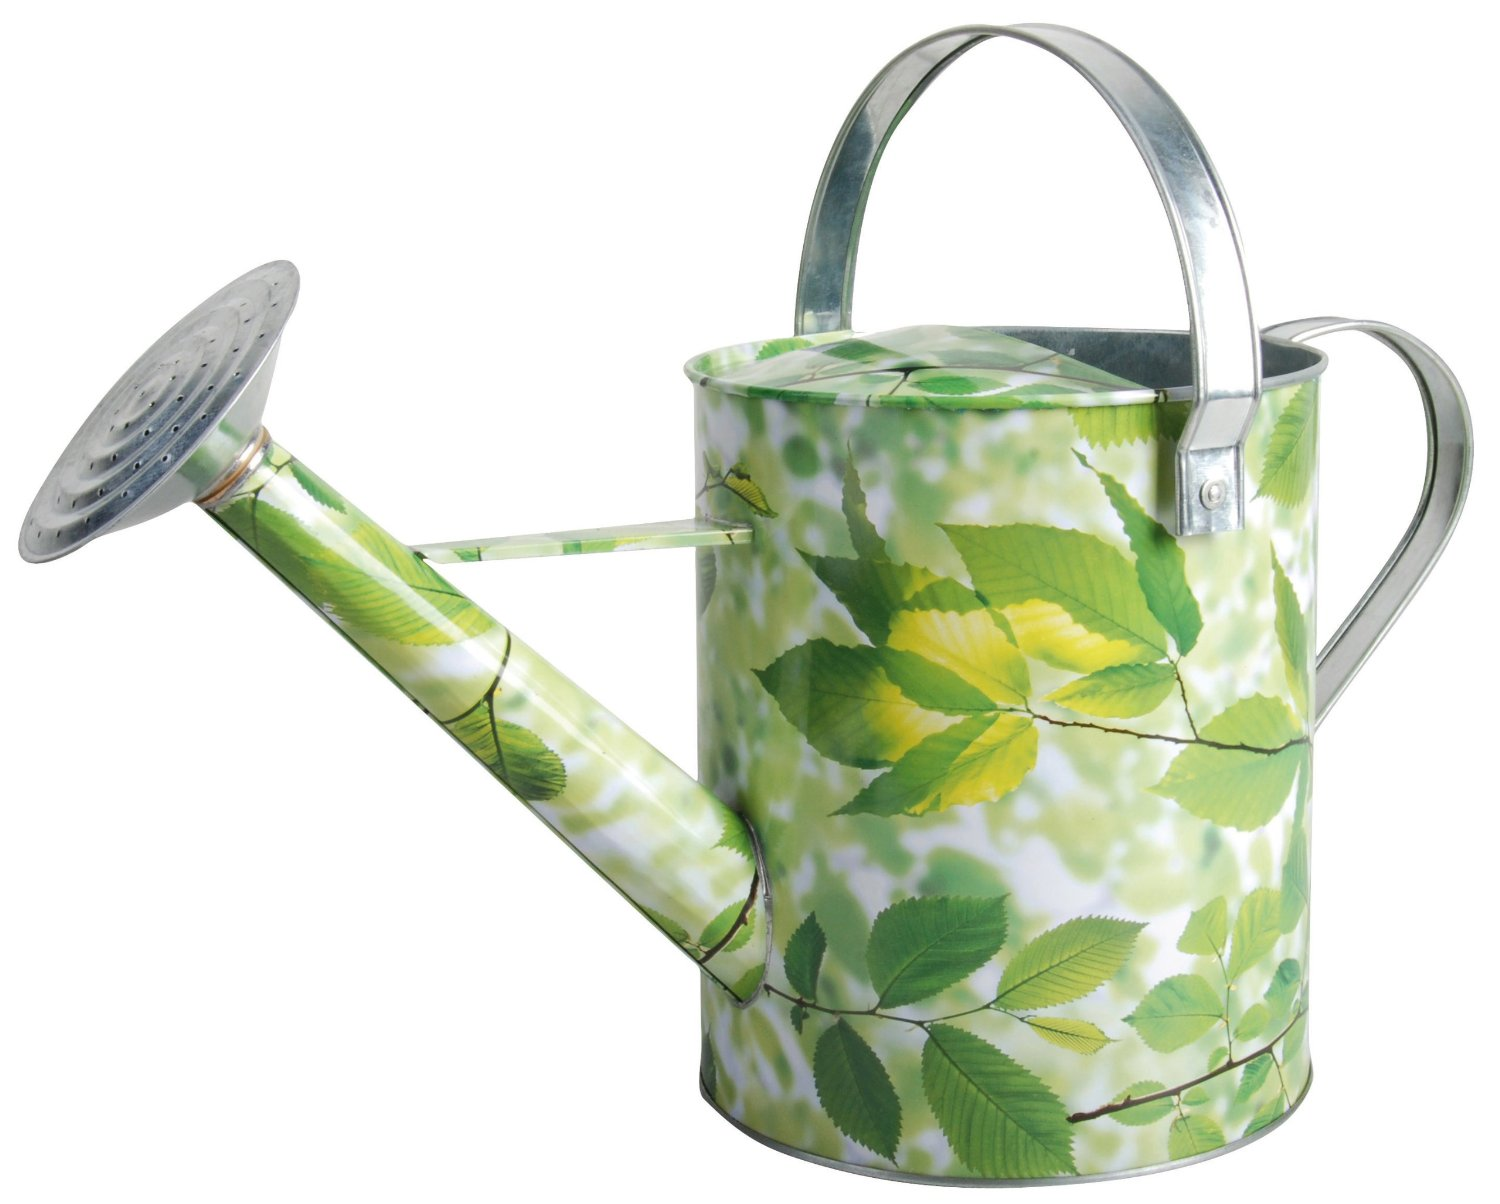 Green Leaf Watering Can Gardening Nirvana